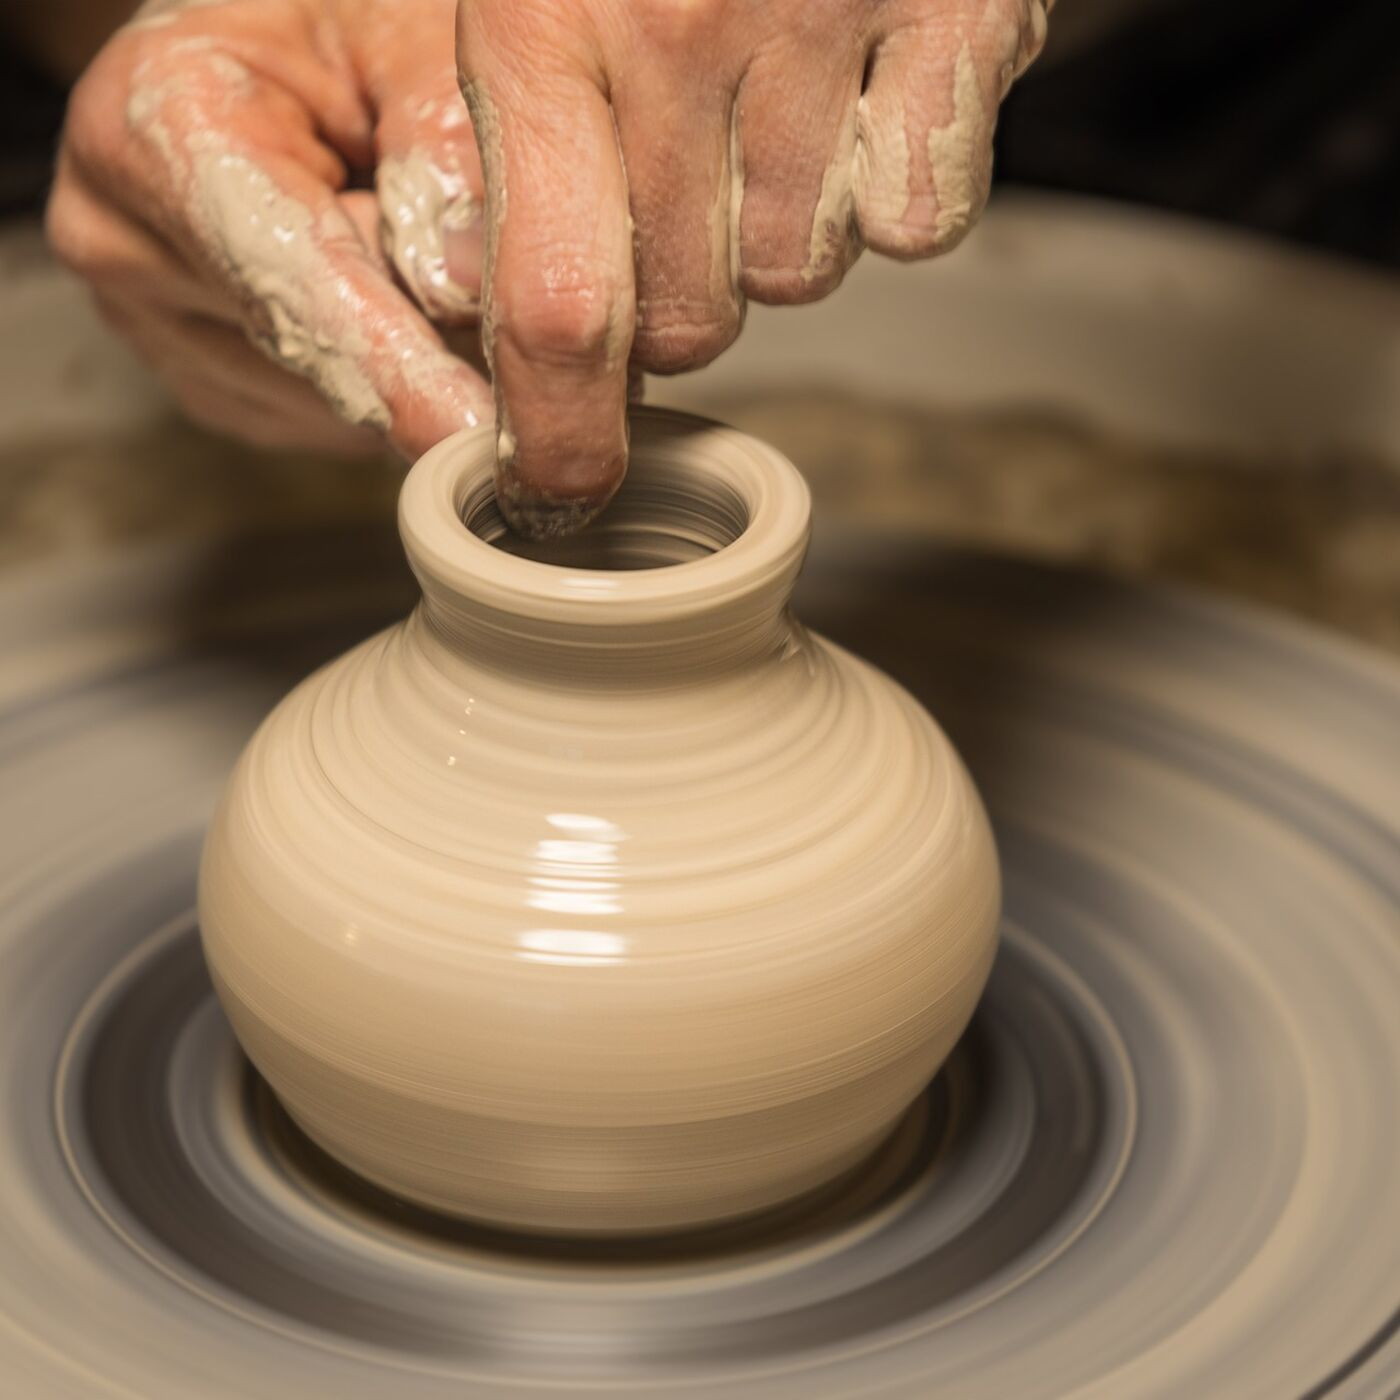 21. Centering Clay feat. Laurie Childers